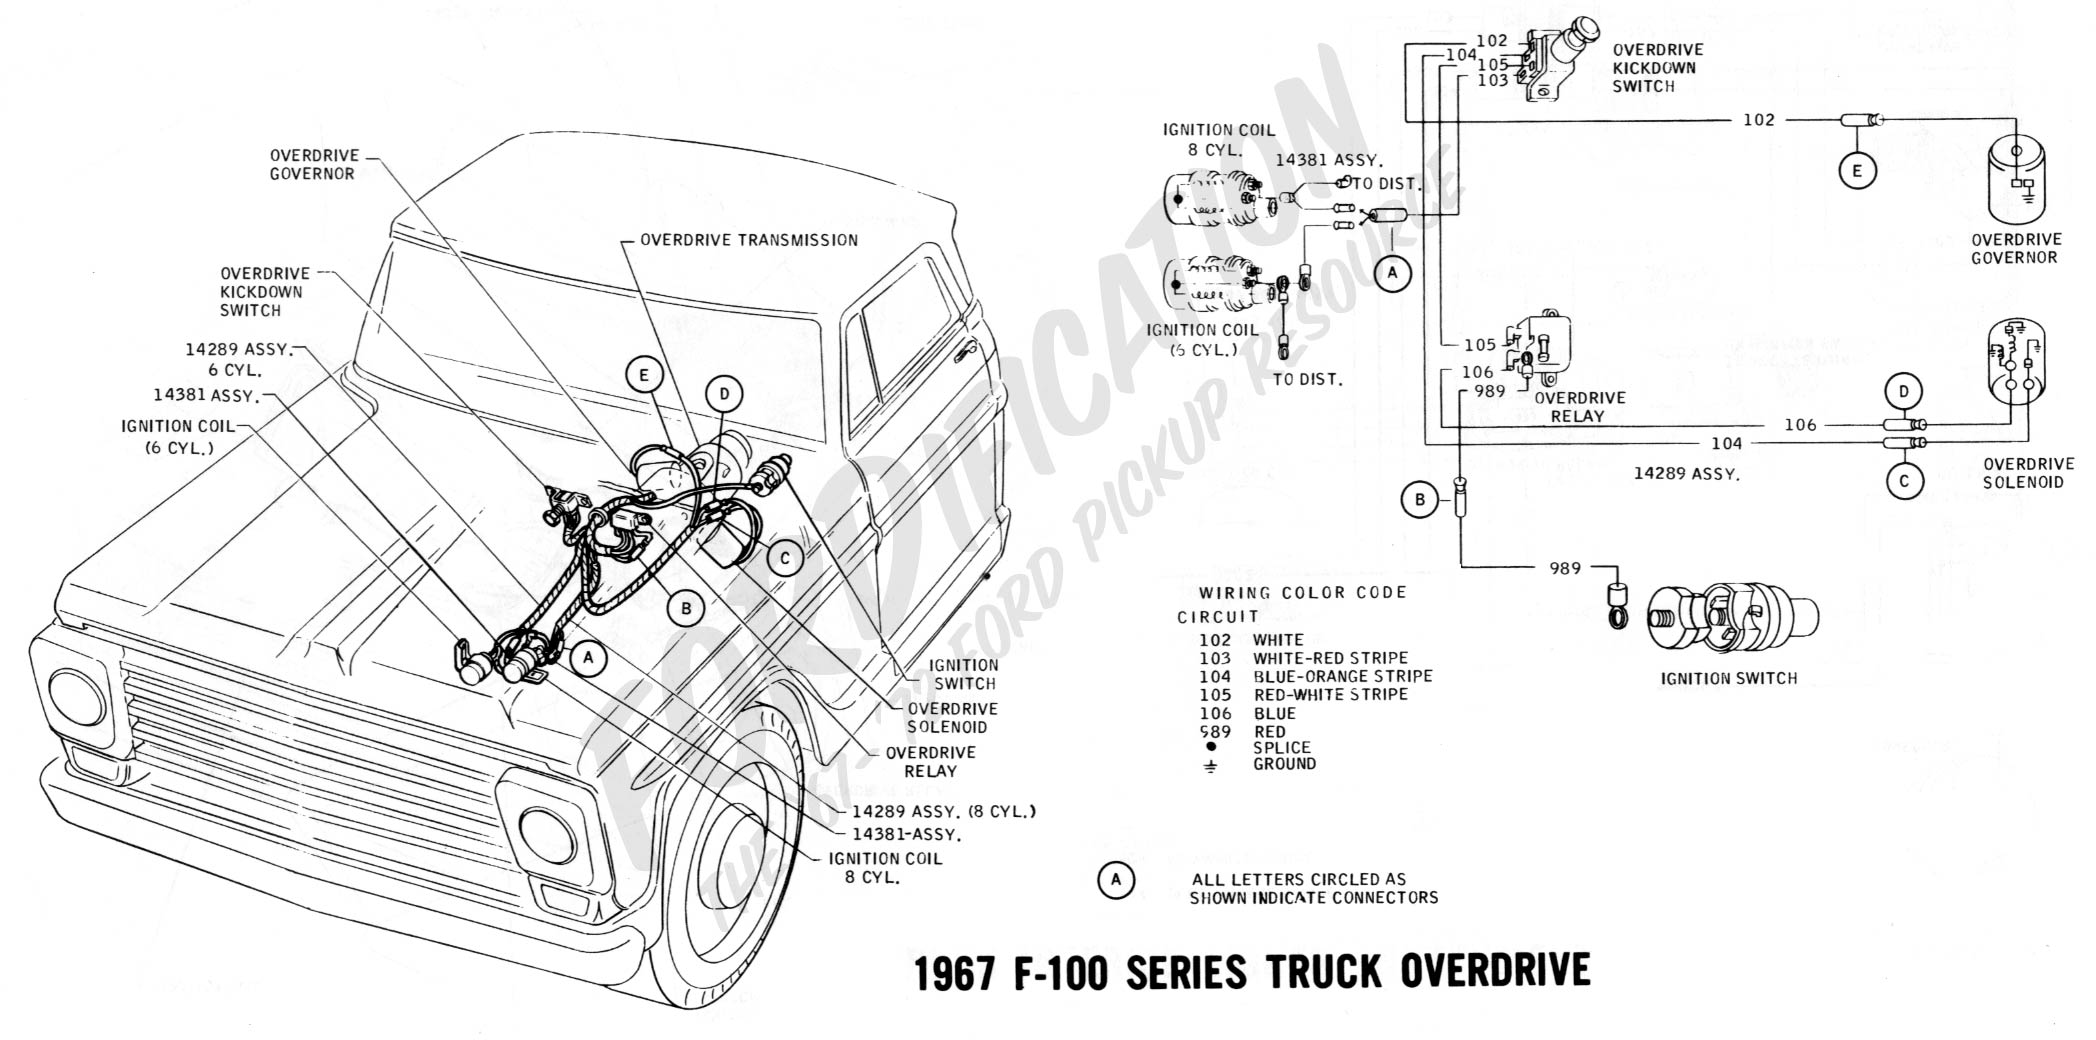 ford truck technical drawings and schematics section h wiring 1966 mustang  wiring diagram 1967 f 100